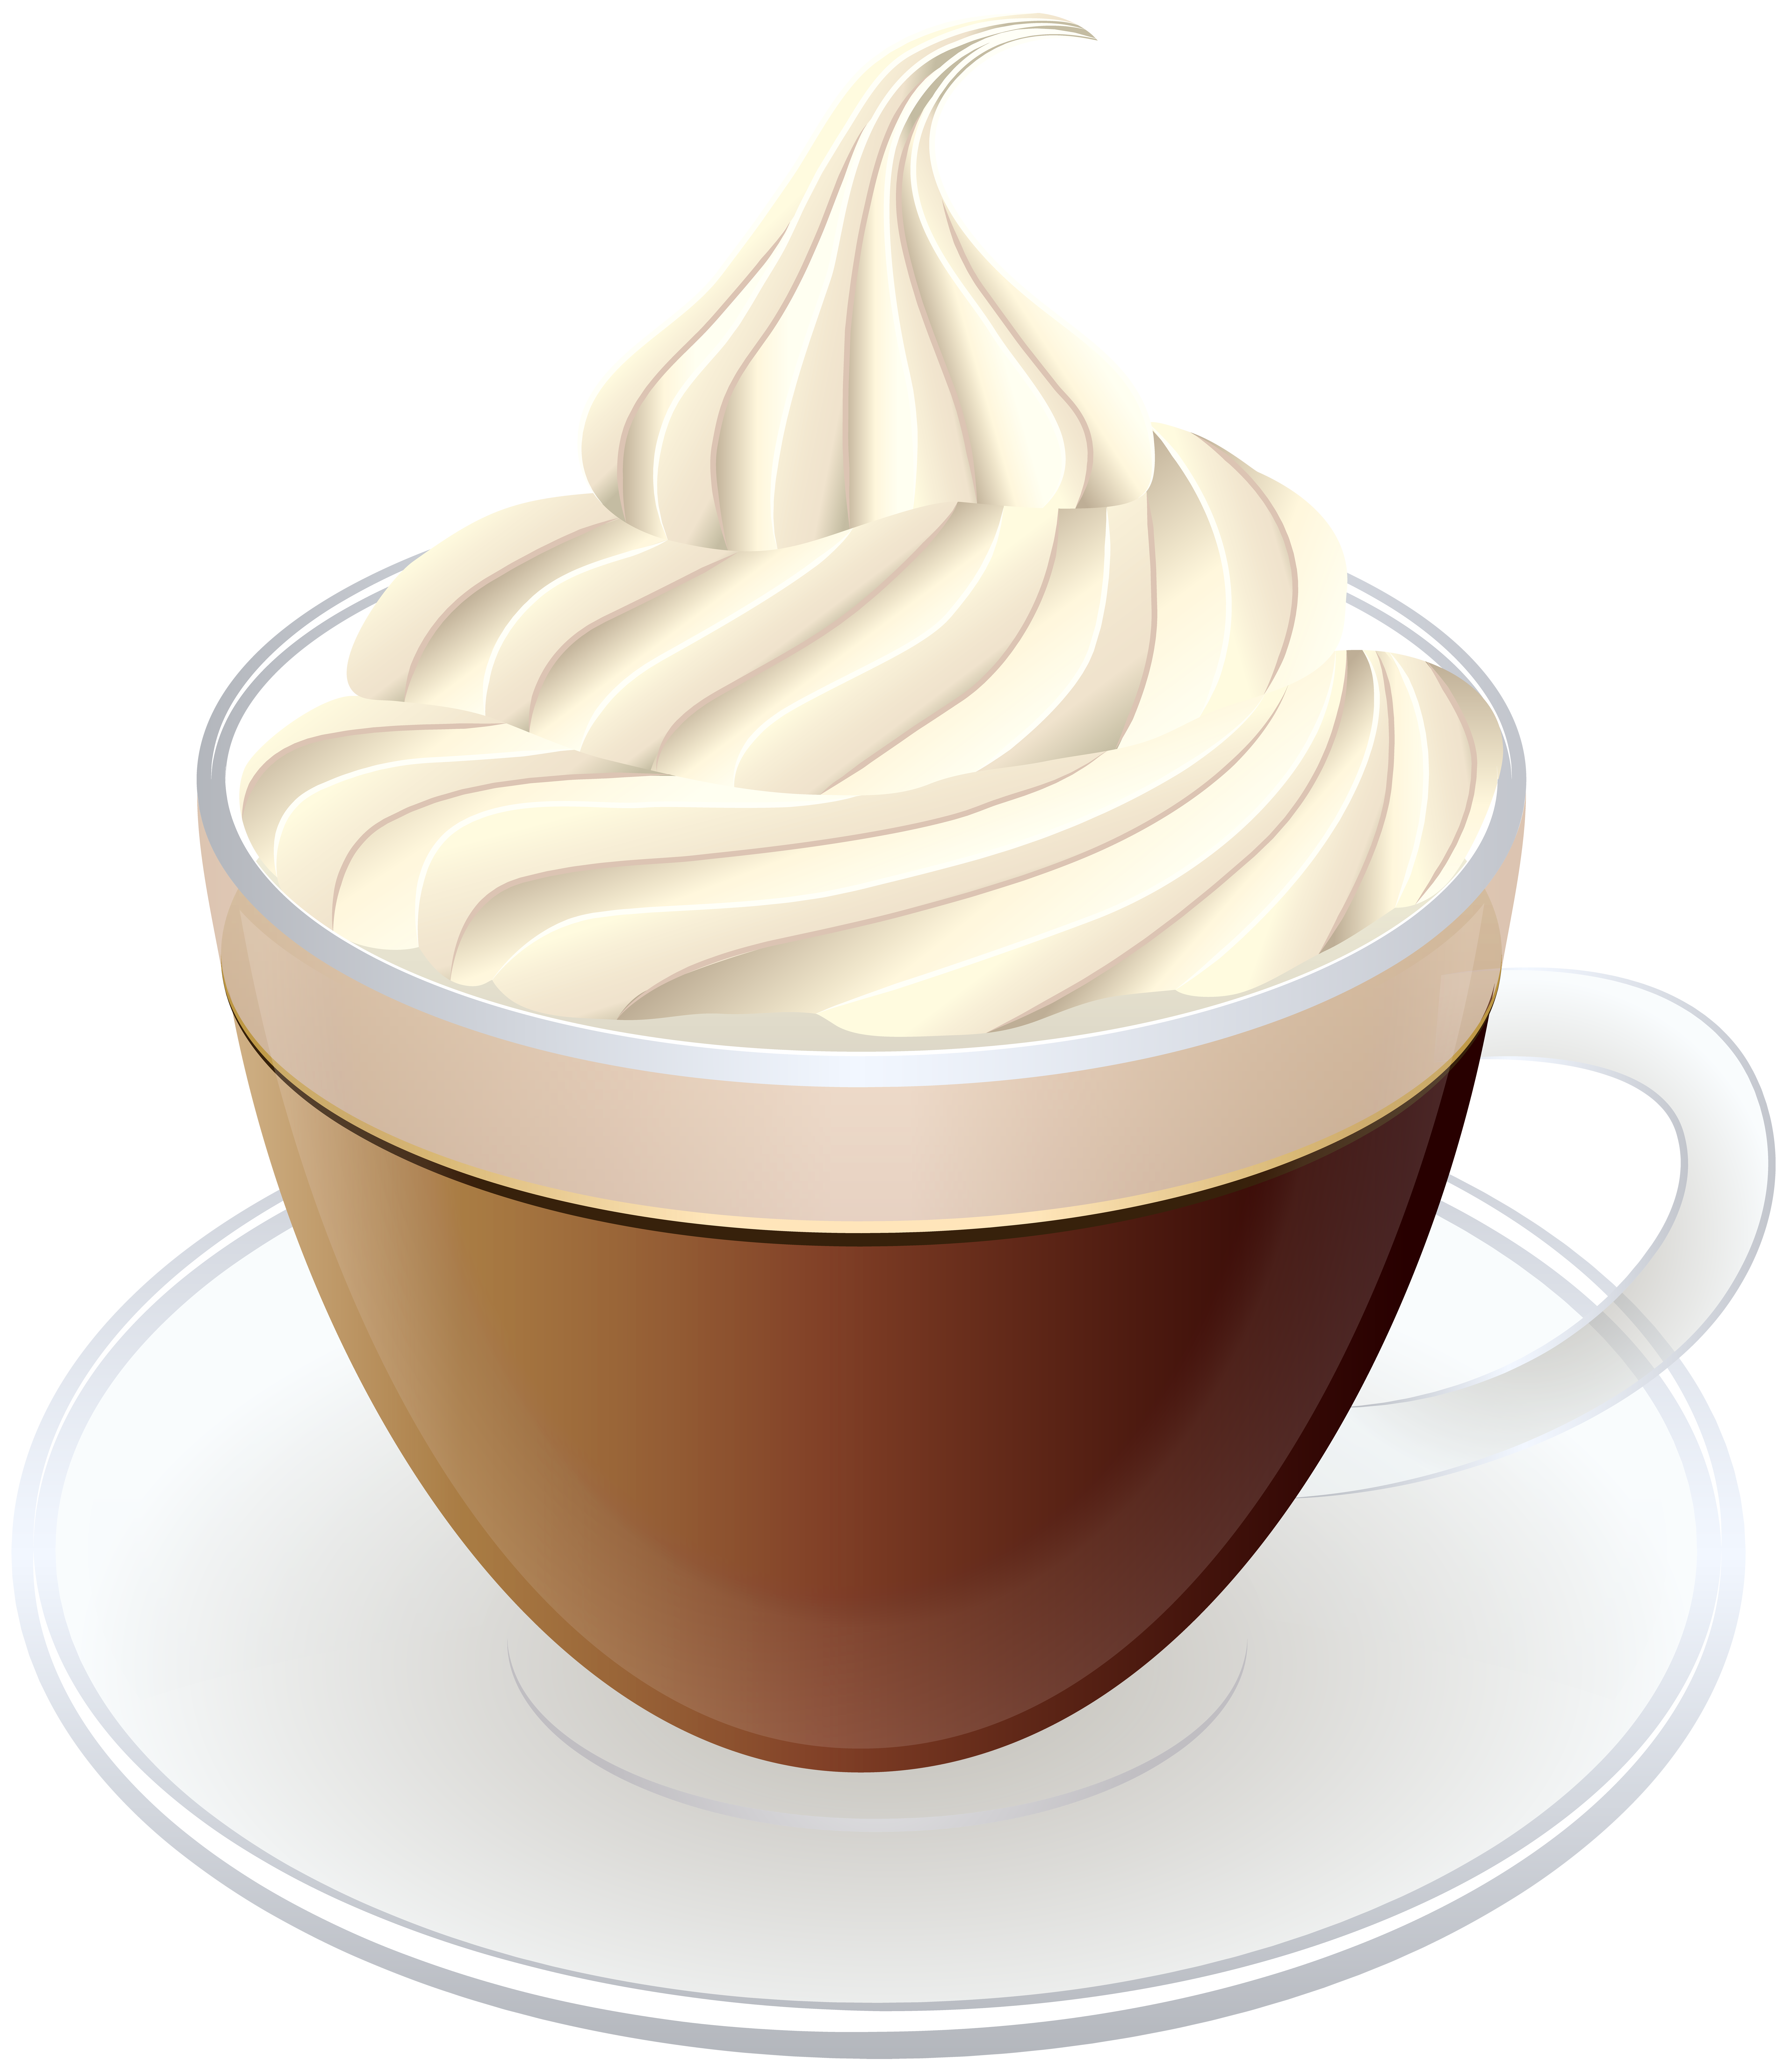 Yogurt clipart transparent background. Coffee with cream png